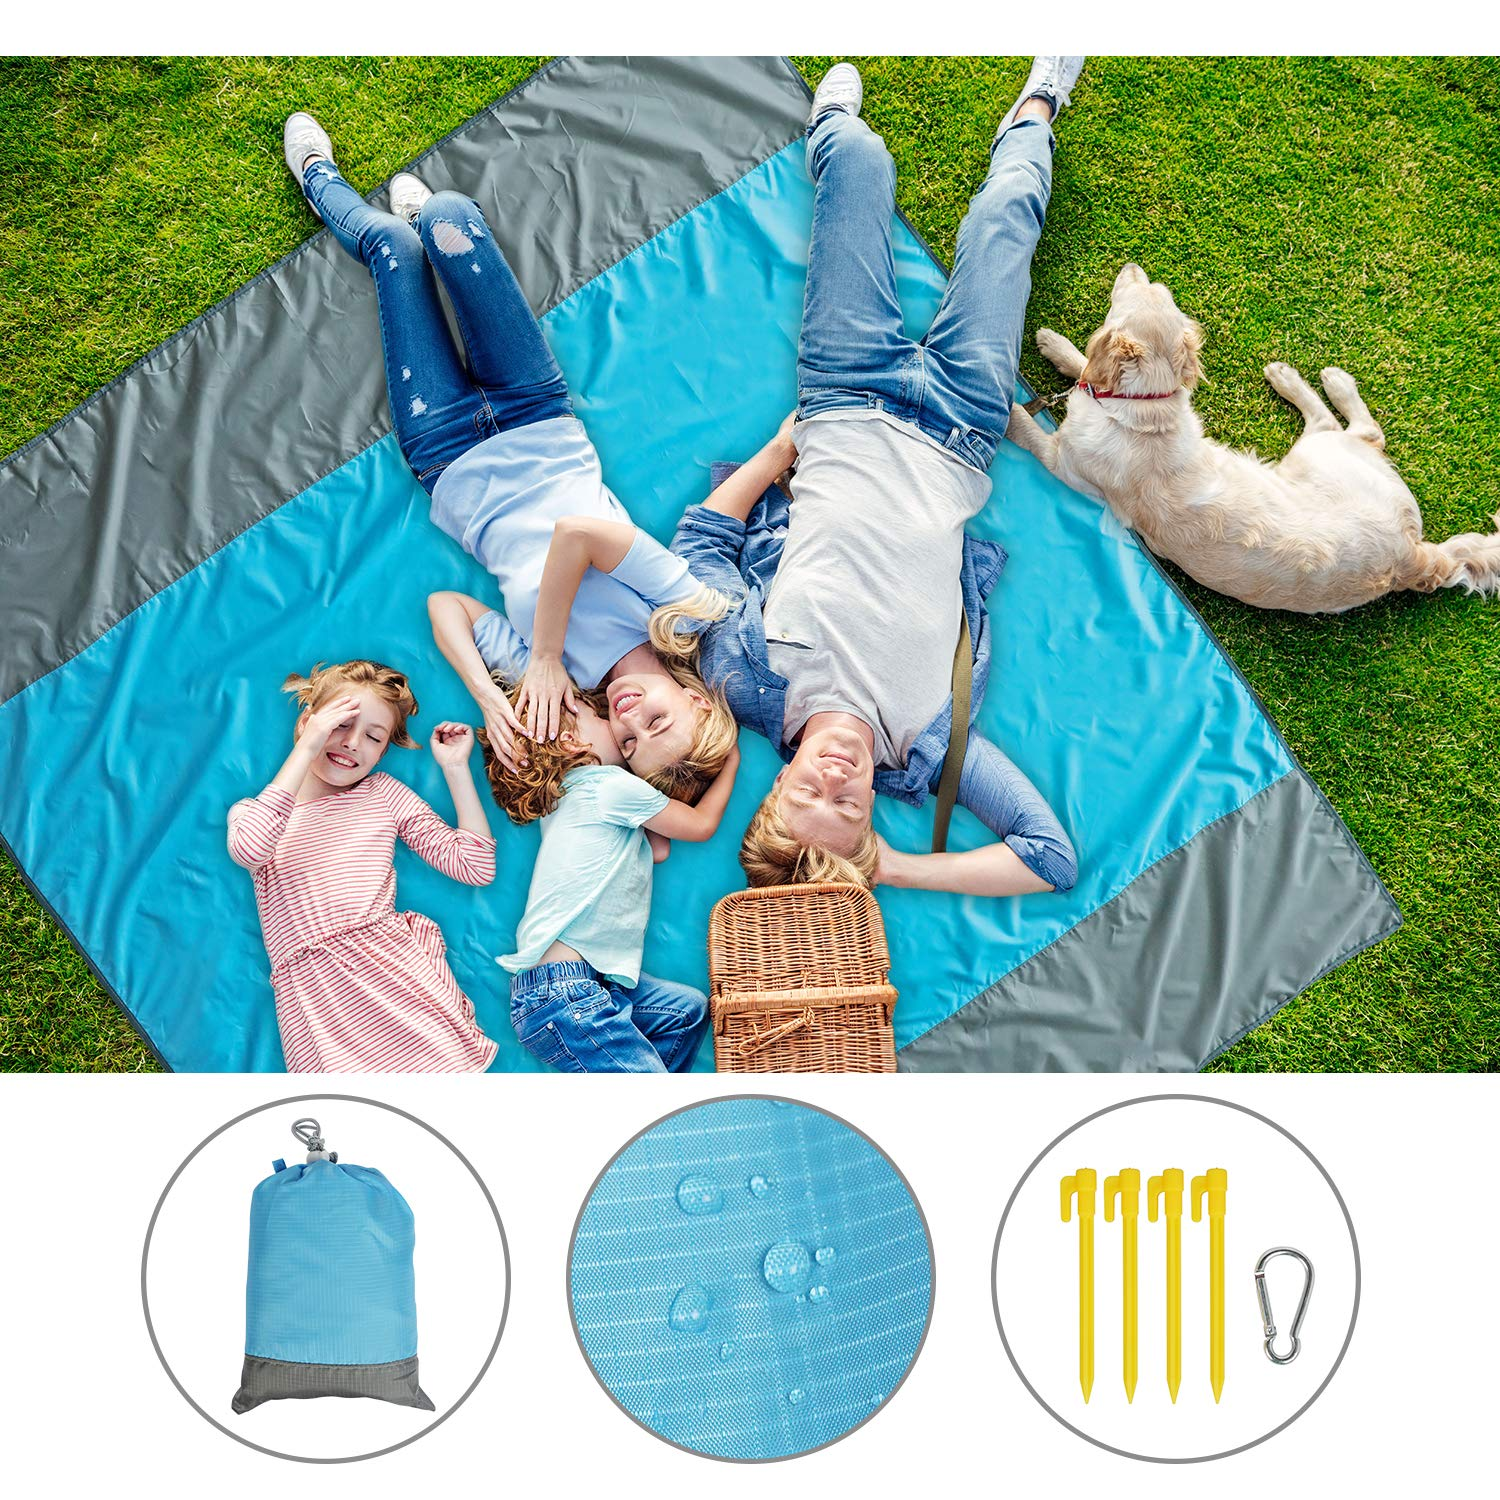 6.8X 6.4 Quick Drying Sand Free Beach Mat for Hiking Camping Picnics Travel and Beach Trips ALLking Large Sand Escape Beach Blanket